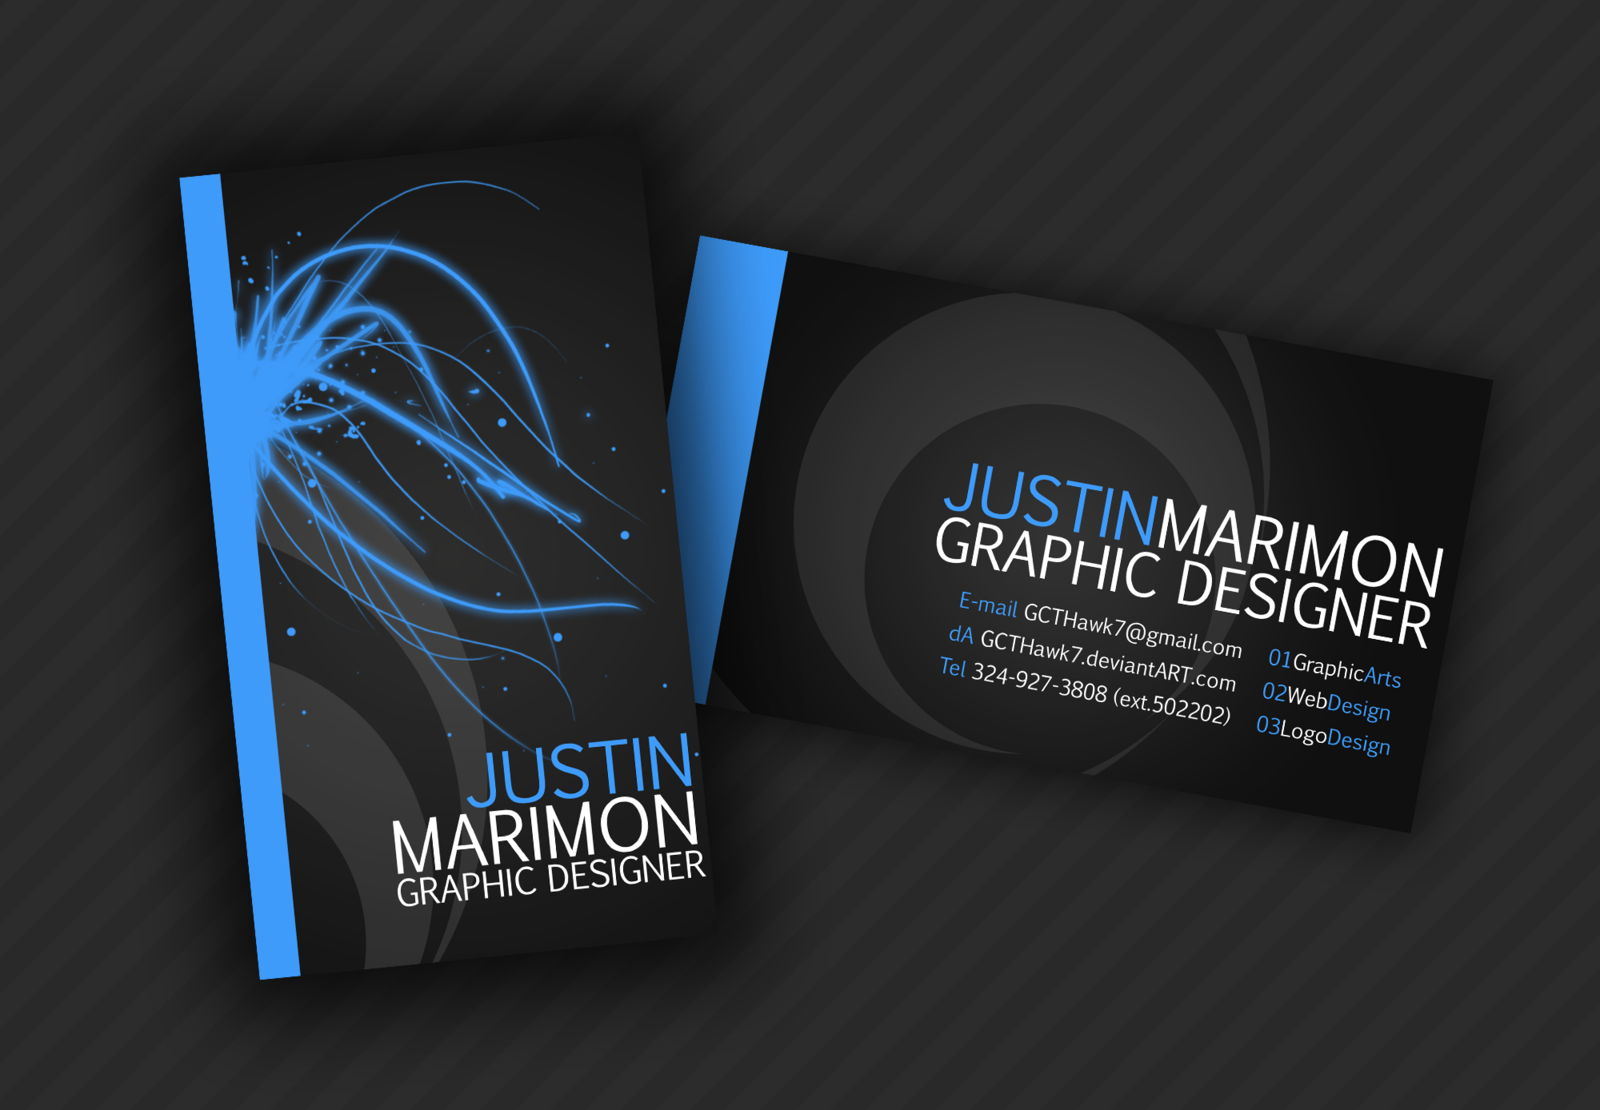 Business card design ideas business card tips business card design ideas colourmoves